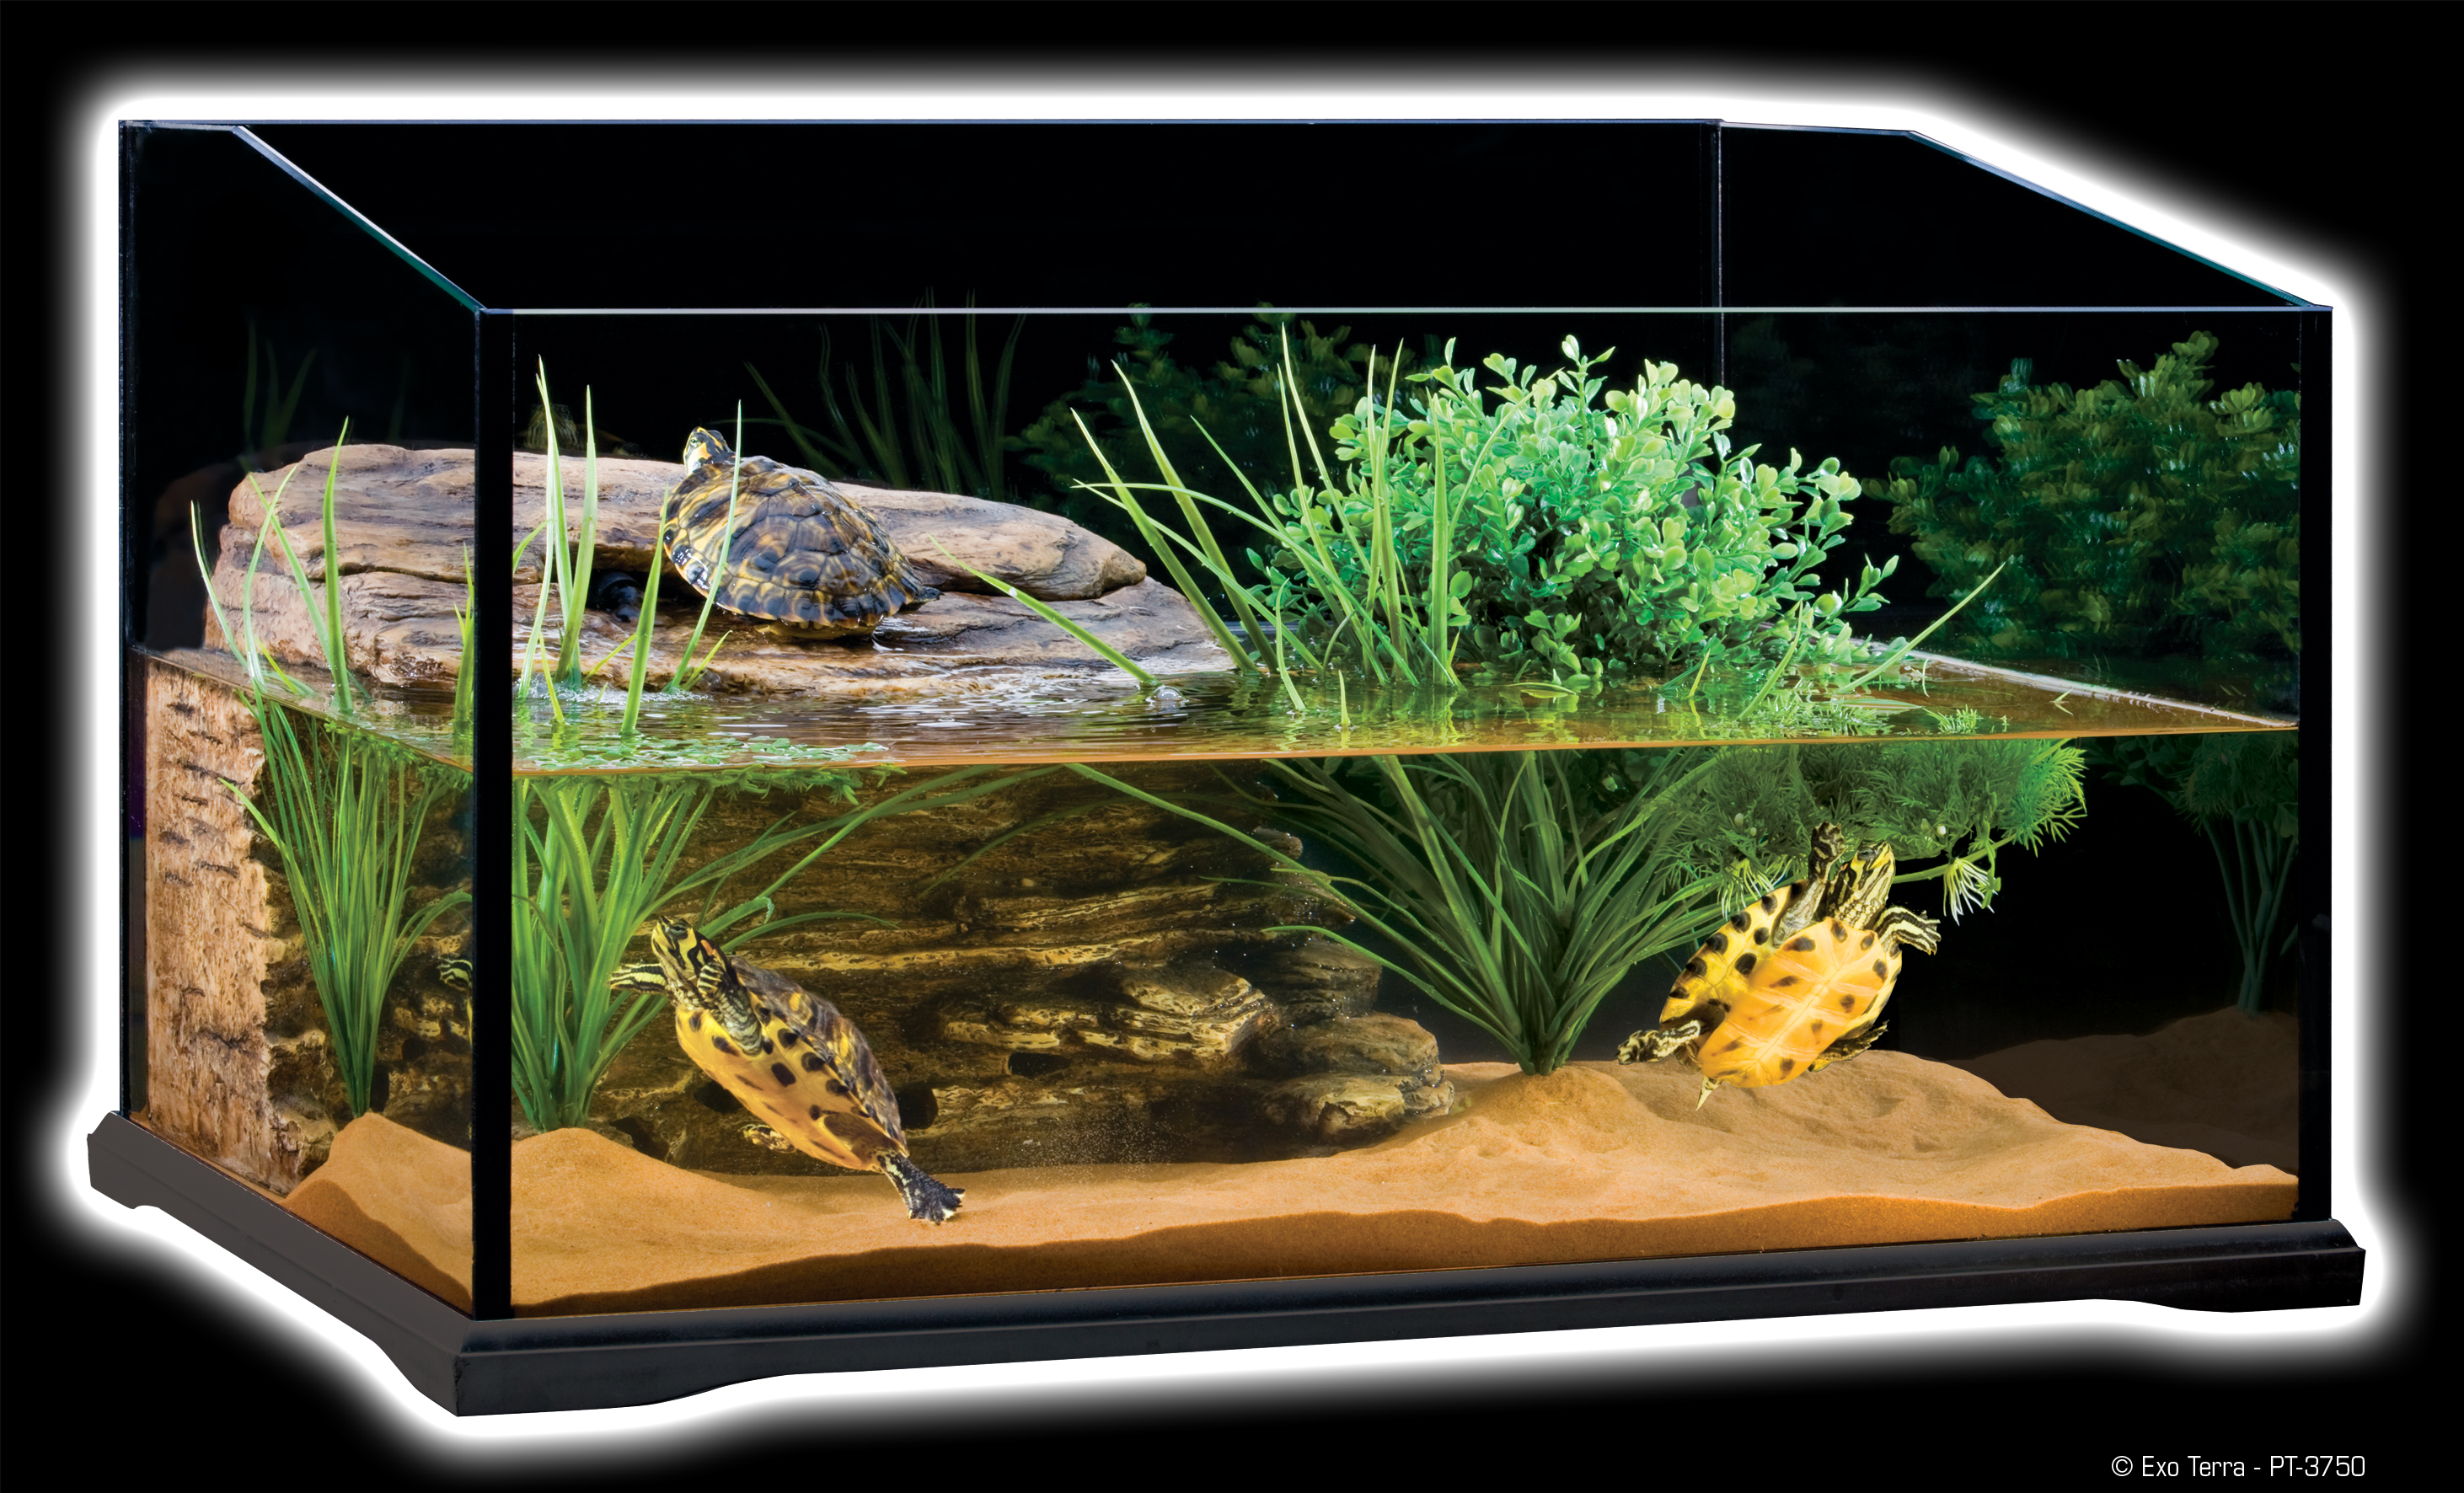 exo terra turtle terrarium aquatic reptile habitat. Black Bedroom Furniture Sets. Home Design Ideas